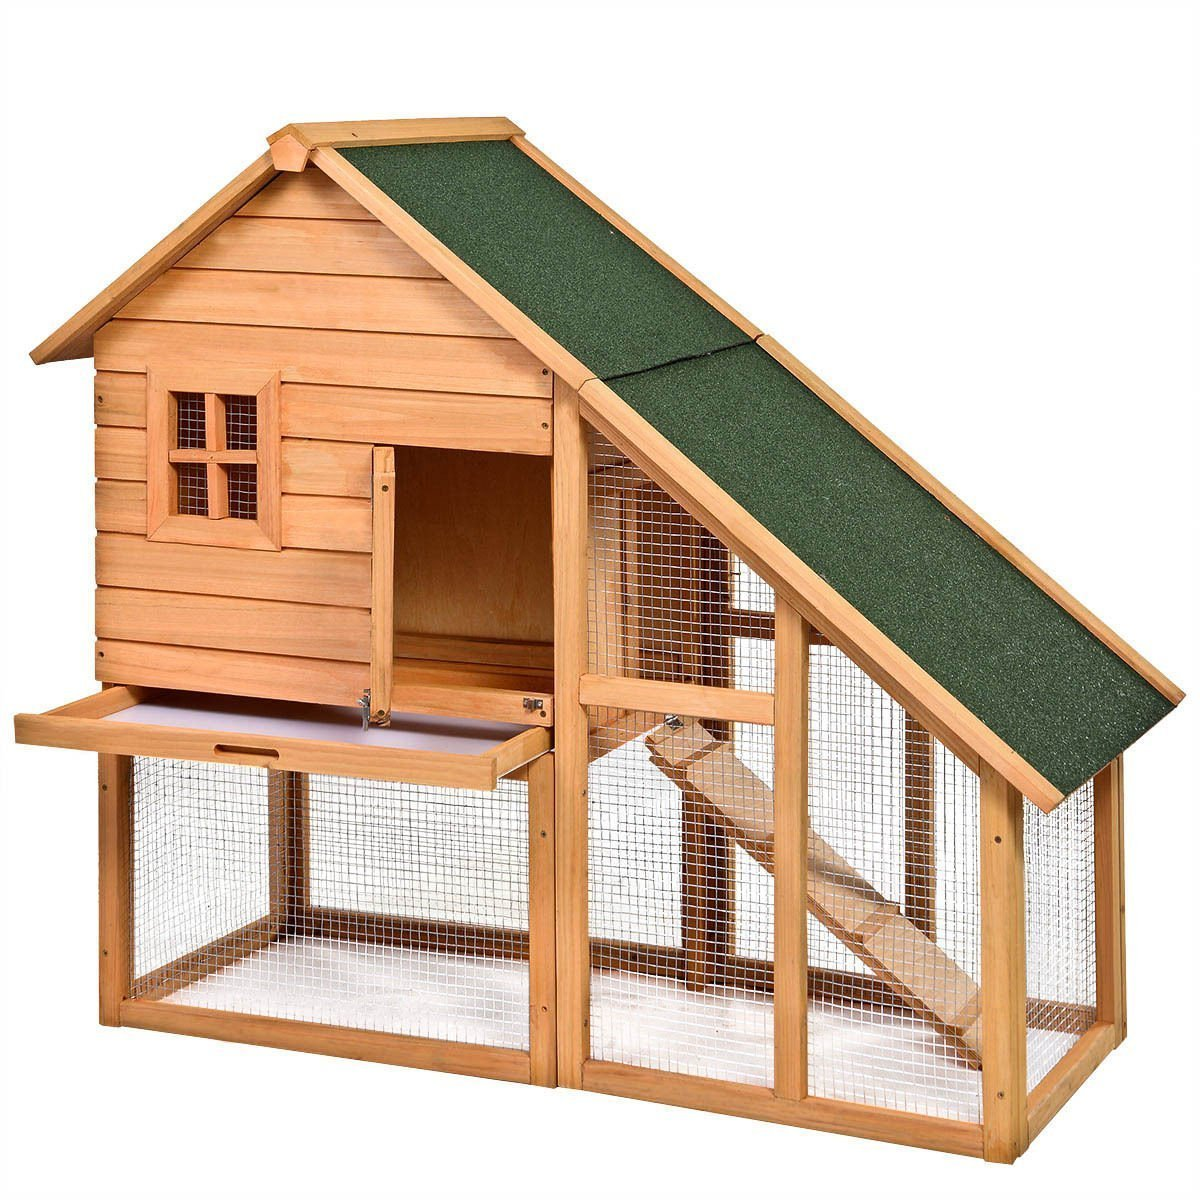 Tangkula Deluxe Wooden Chicken Coop 55'' Hen House Rabbit Wood Hutch Poultry Cage Habitat by Tangkula (Image #1)